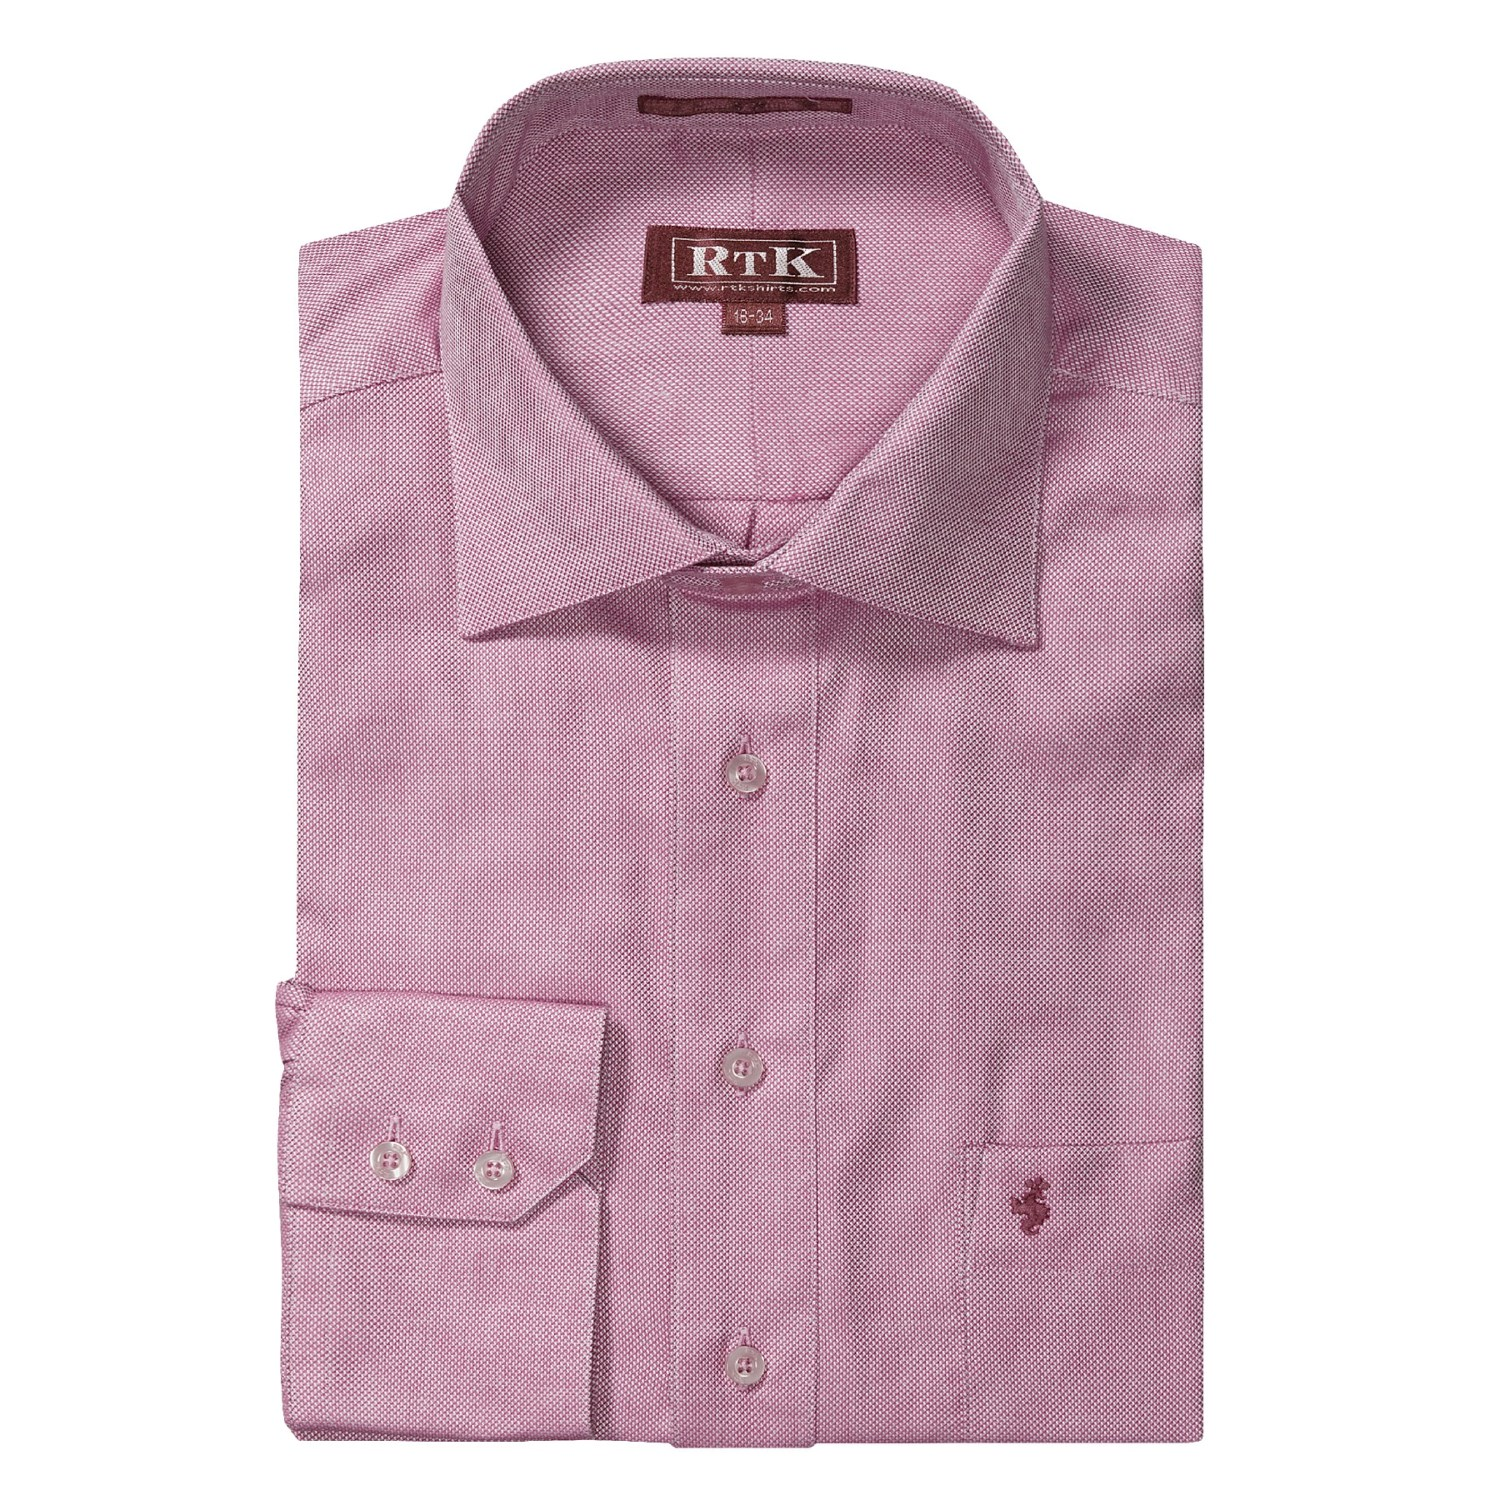 rtk shirts royal oxford dress shirt english spread